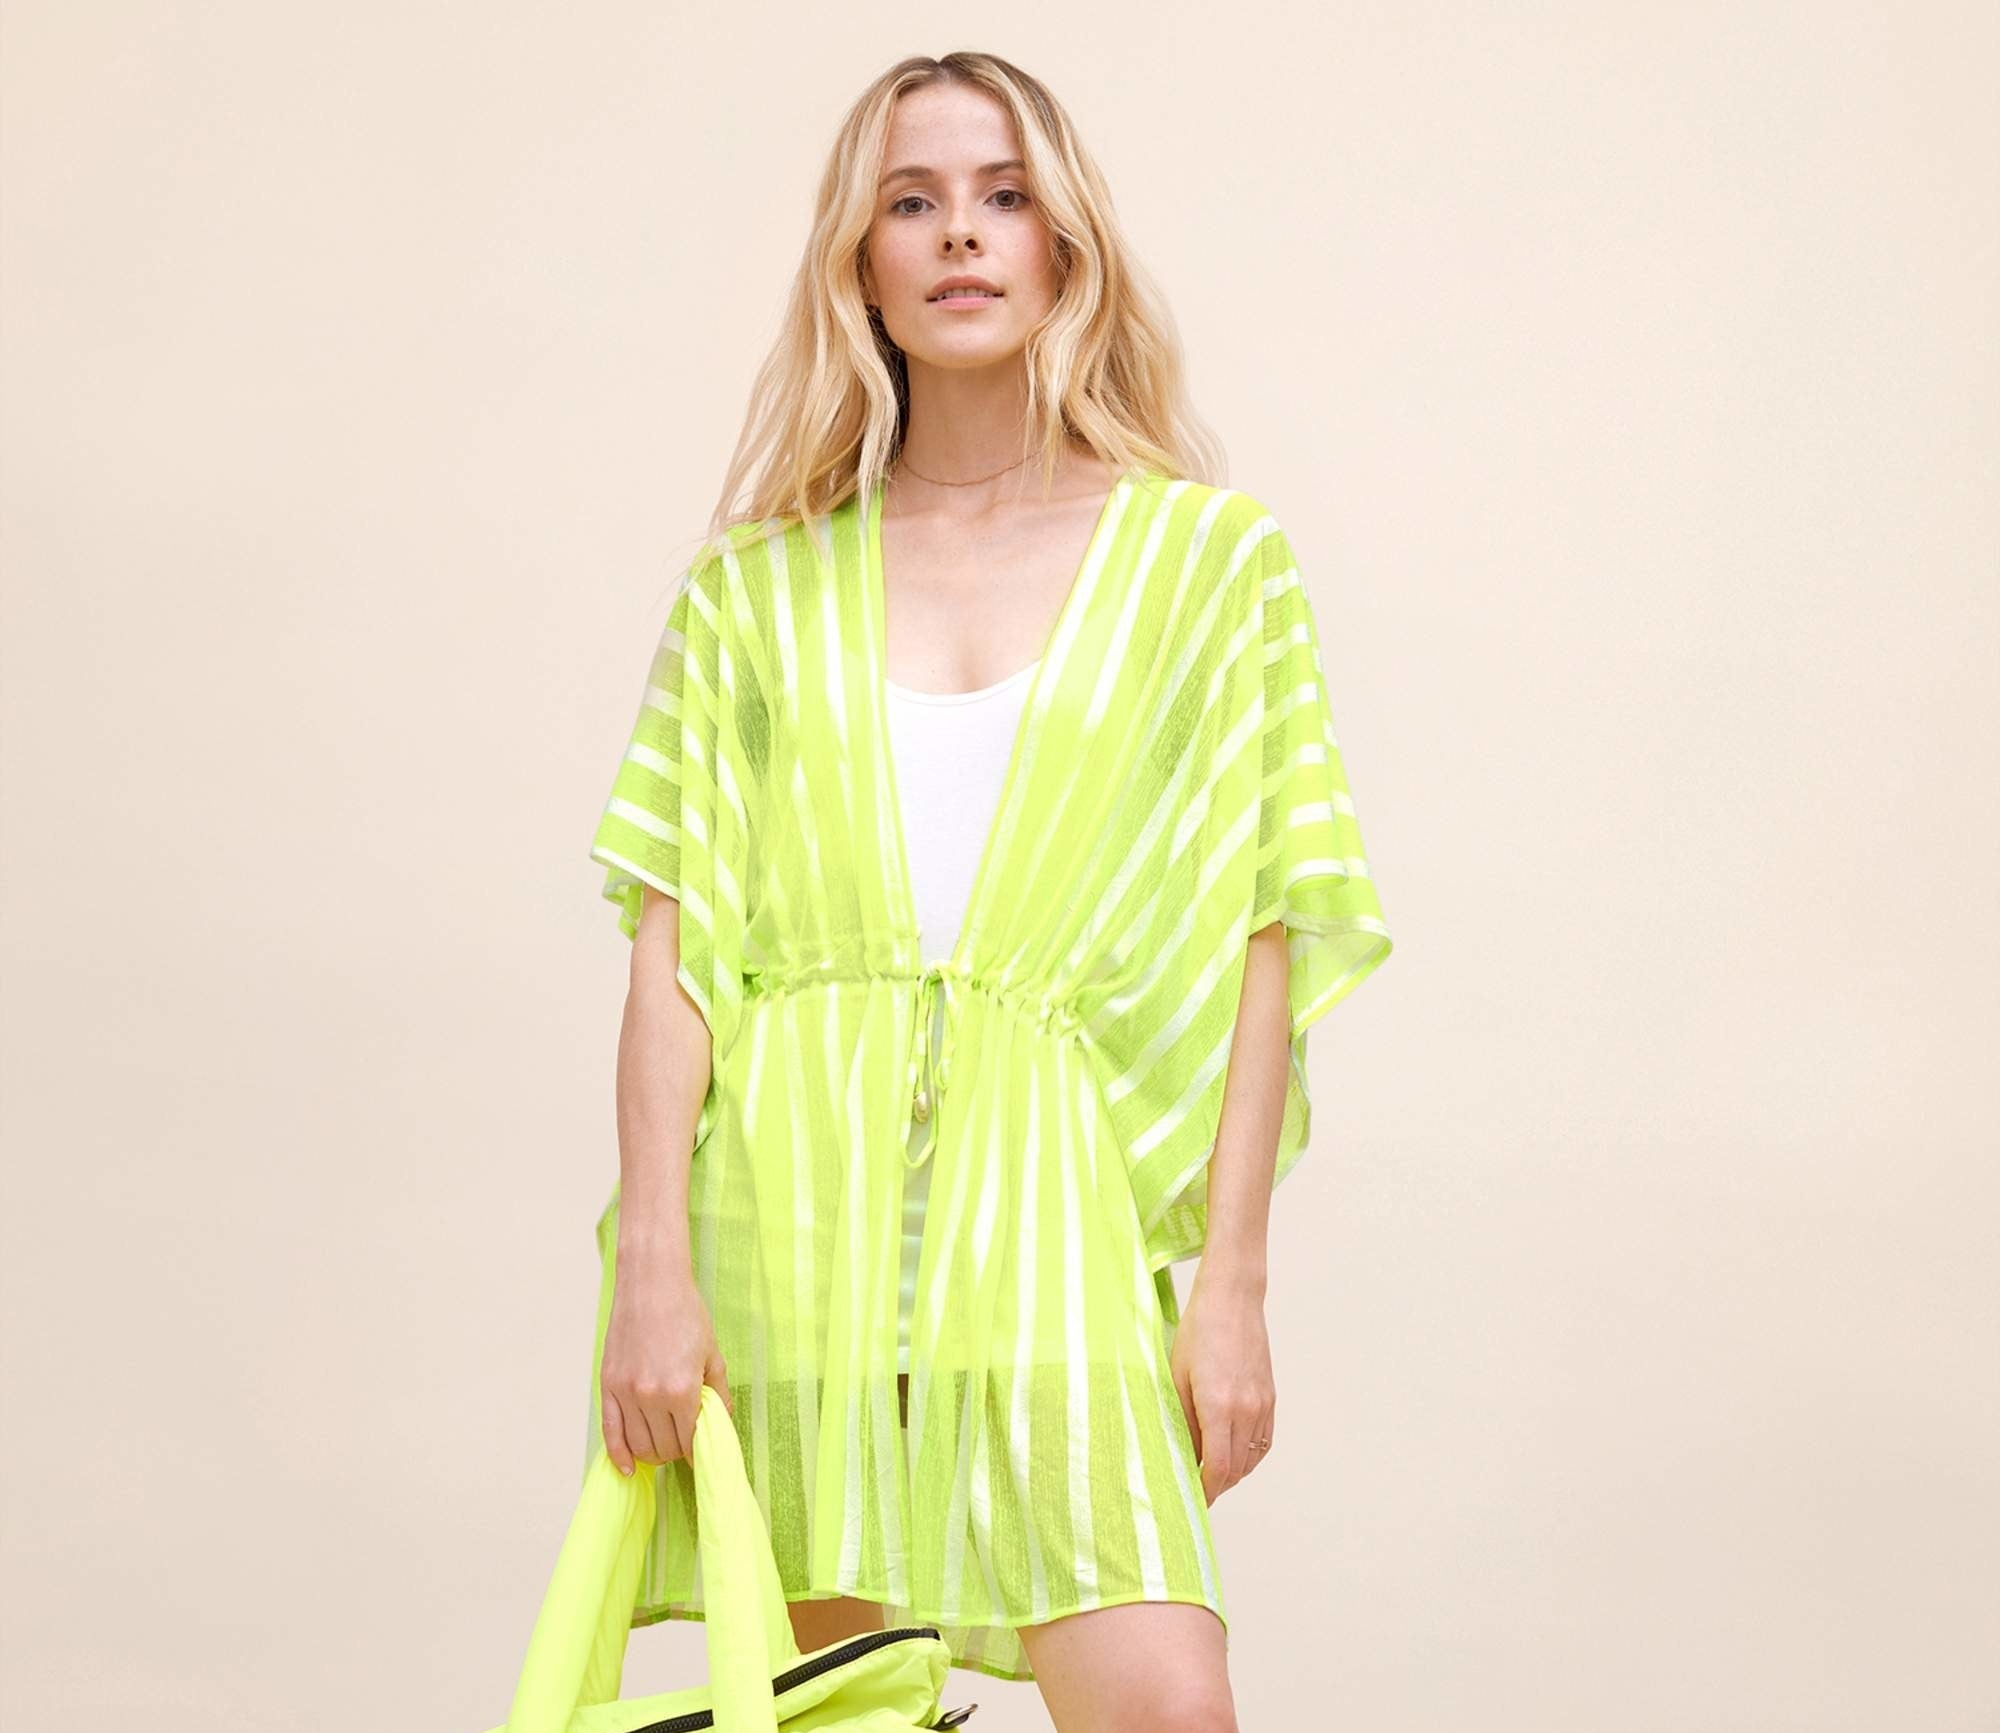 a model in a neon yellow cover up